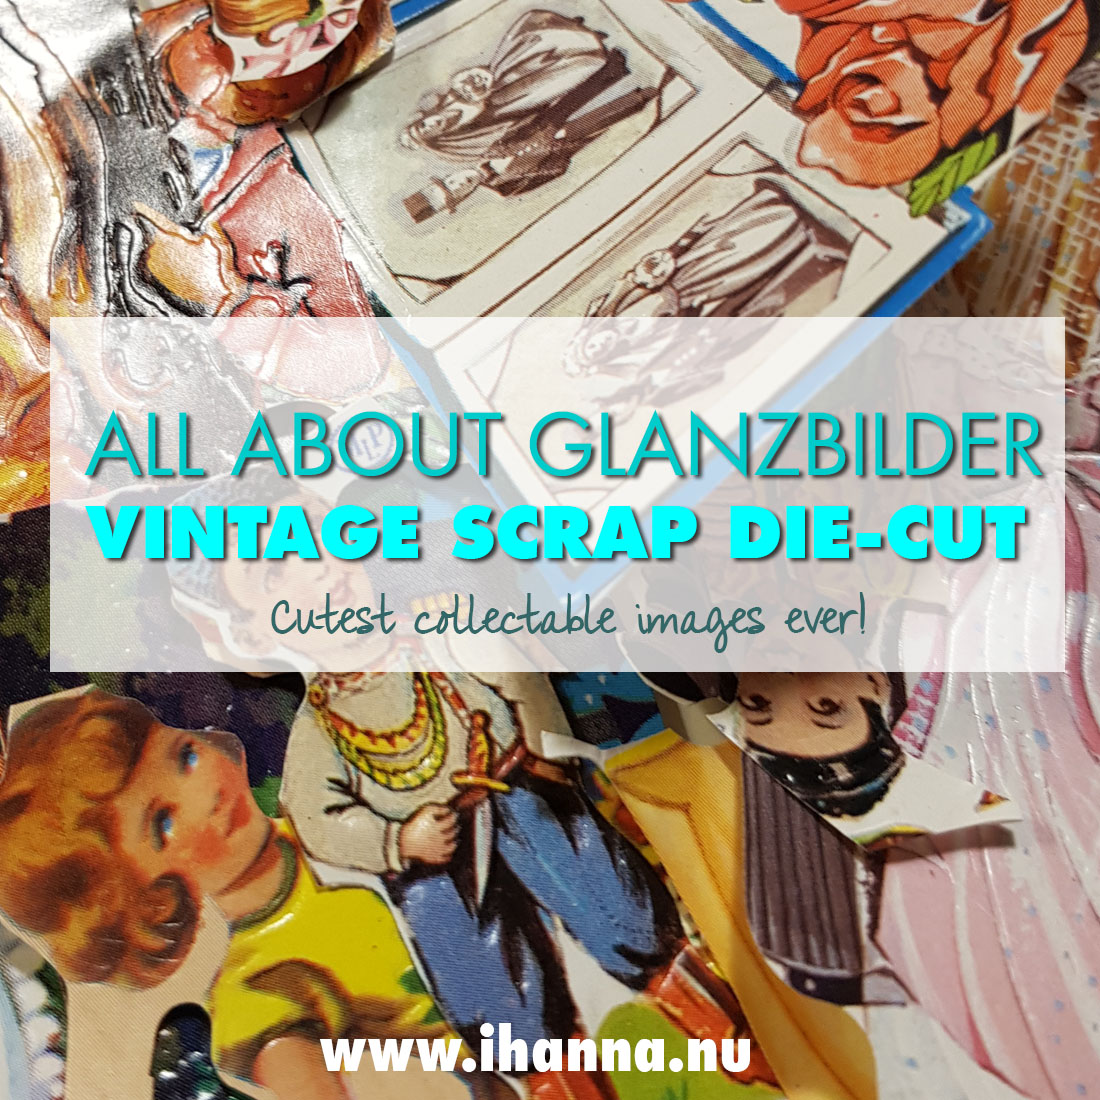 All about vintage scrap die-cut or Victorian scrapdiecuts / glanzbilder / bokmärken